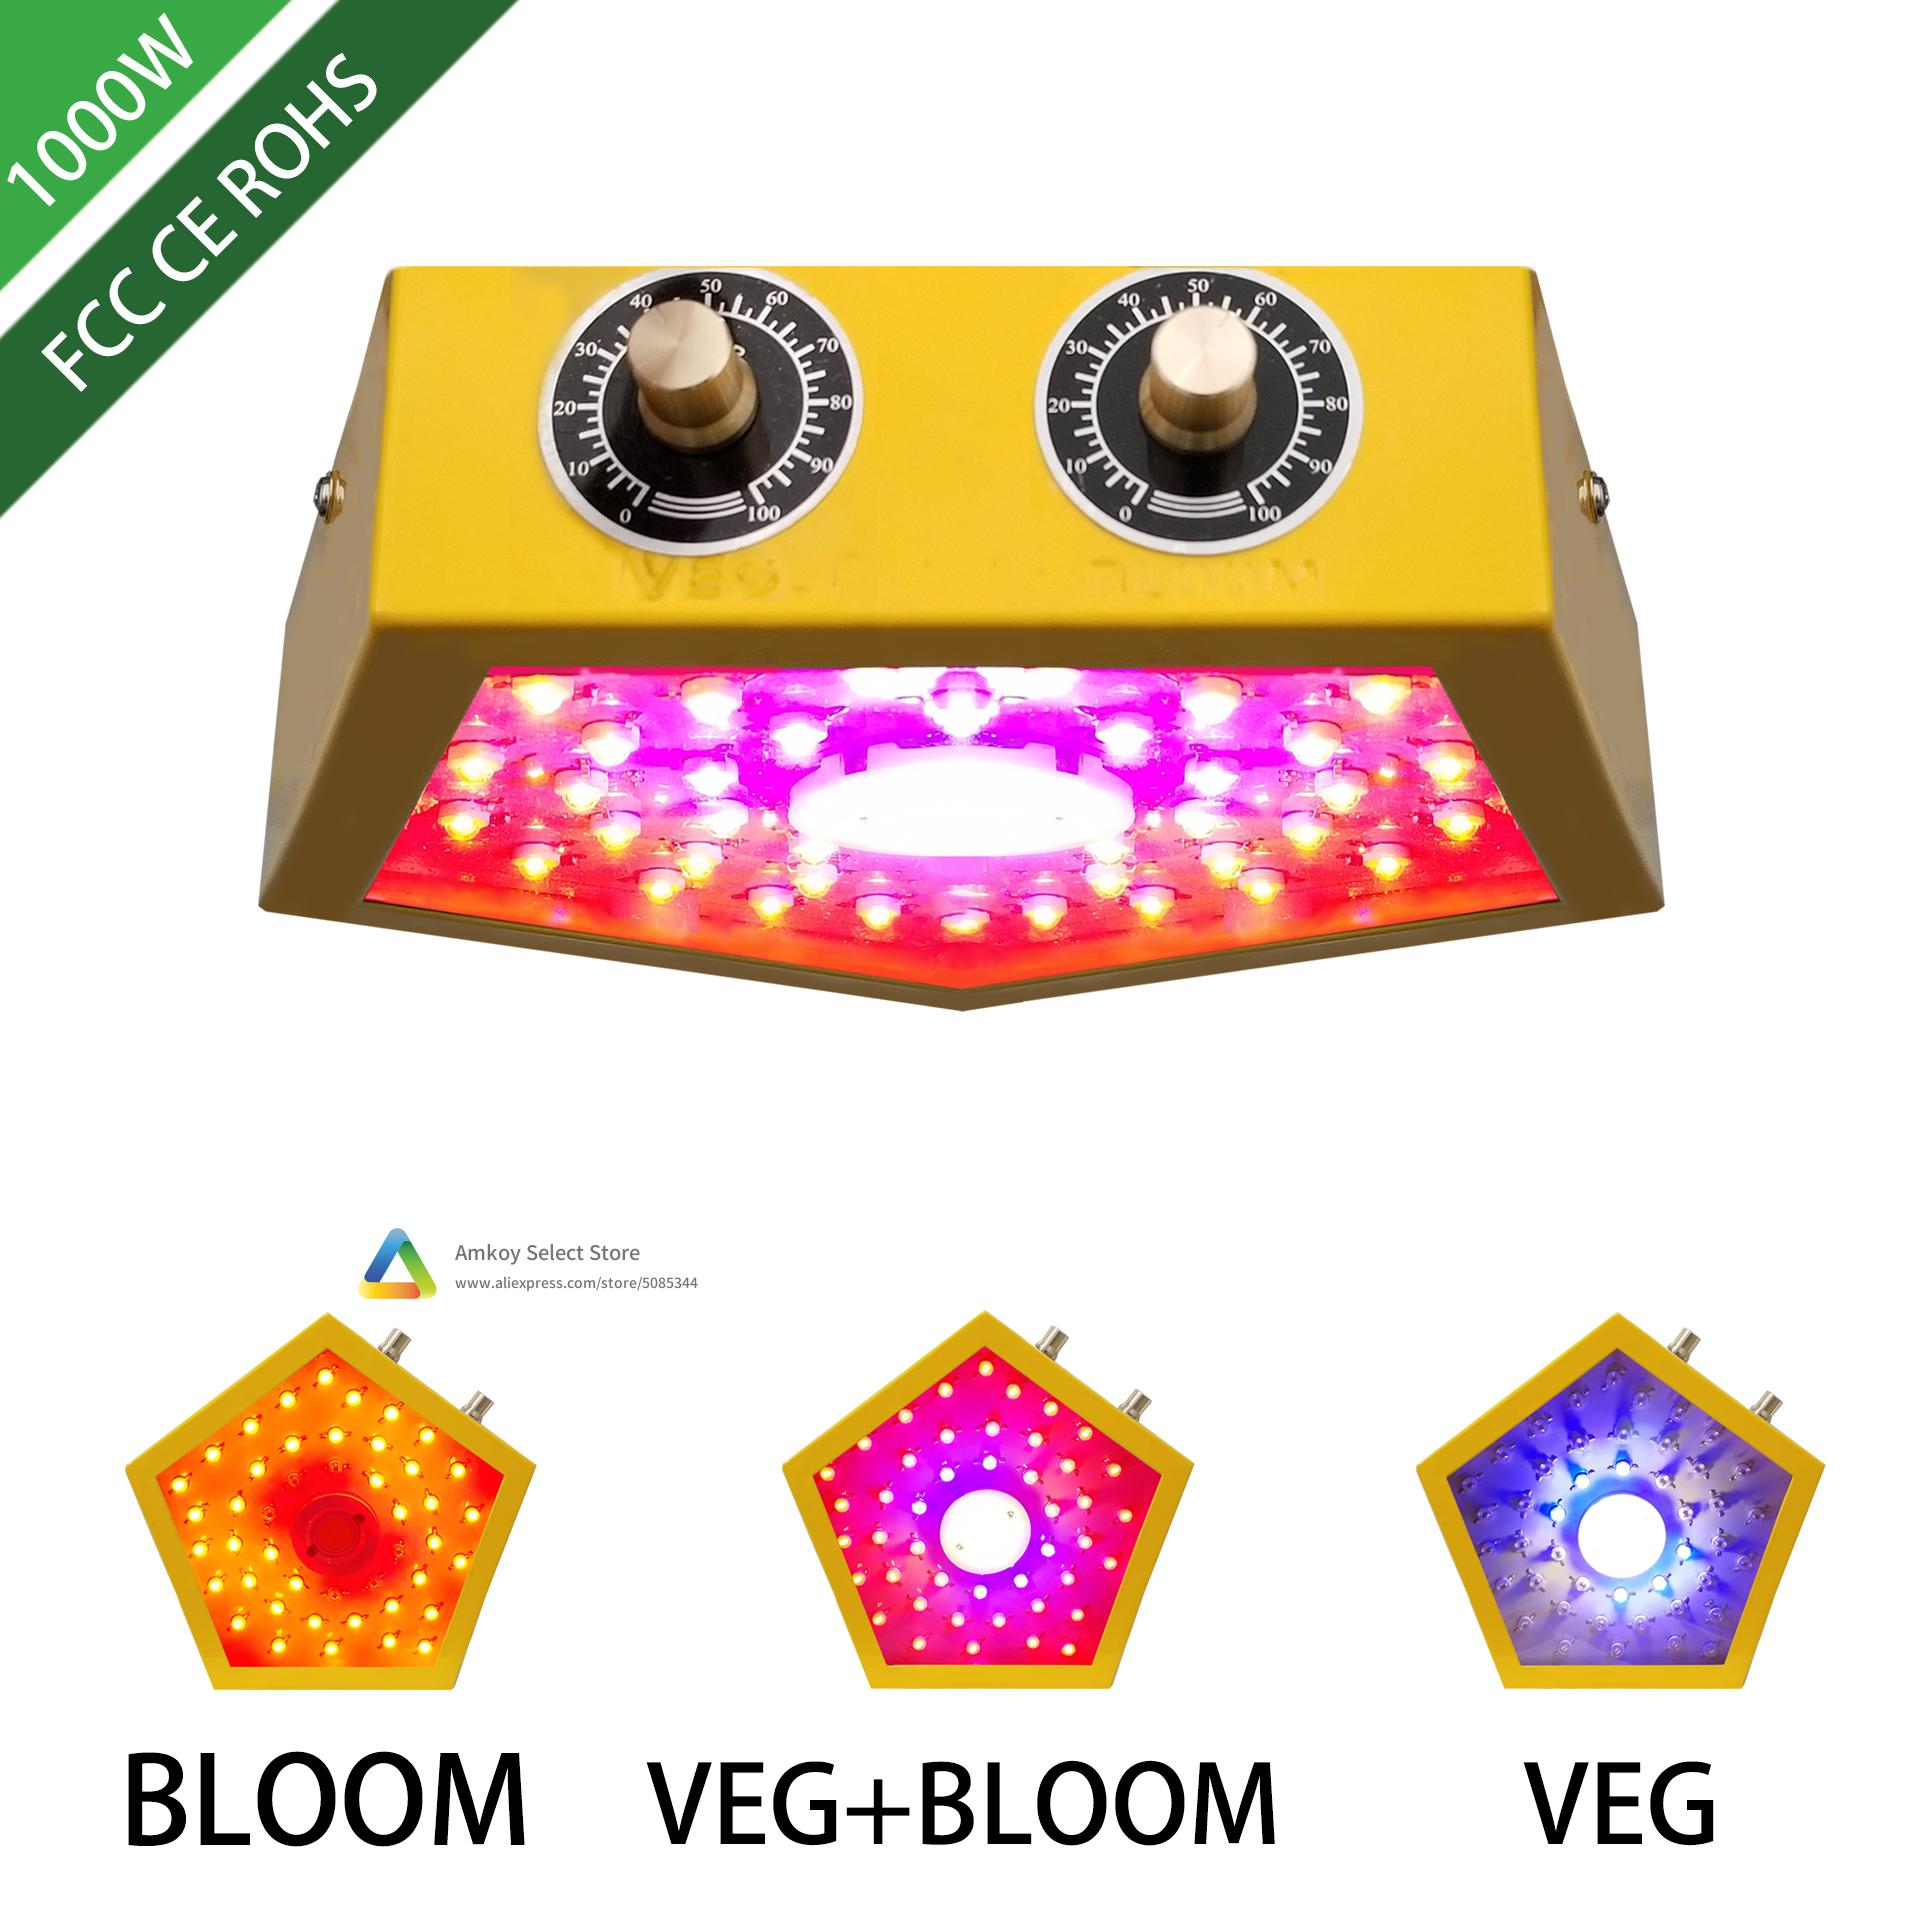 AMKOY 1000W New Design Grow Light Full Spectrum COB Chips For Indoor Medical Plants Grow Ved And Bloom Growing Tent Lamp